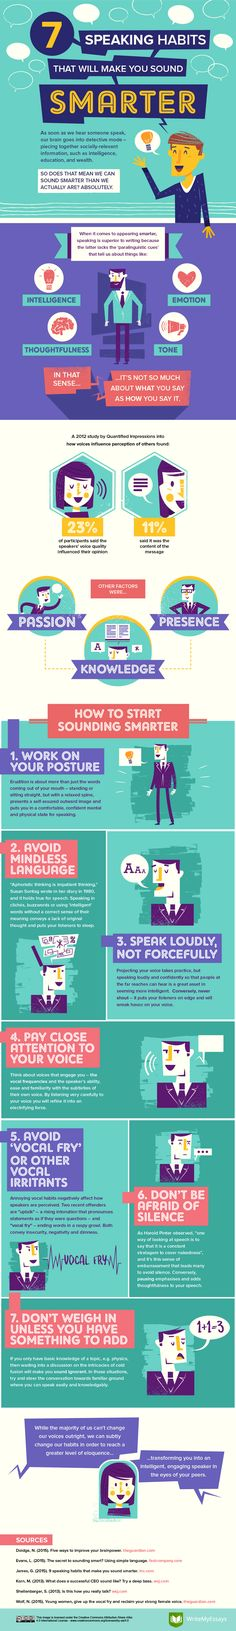 How to interact at networking events and these fantastic ways to sound smarter.